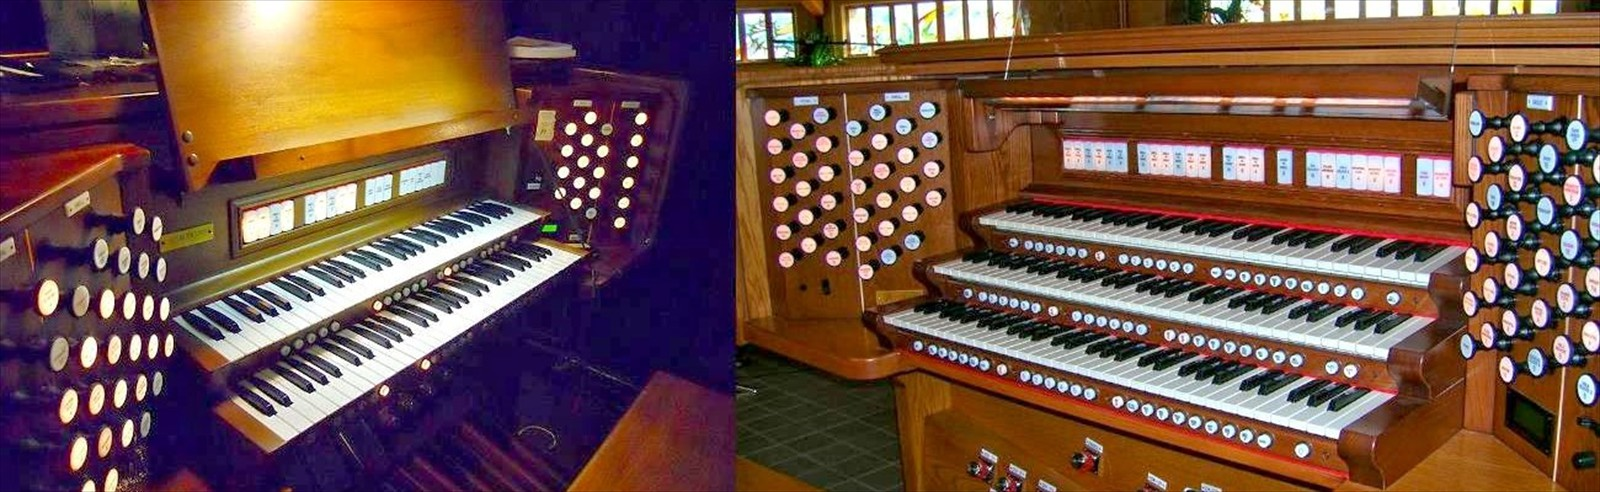 Rodgers church, studio, and home organs...